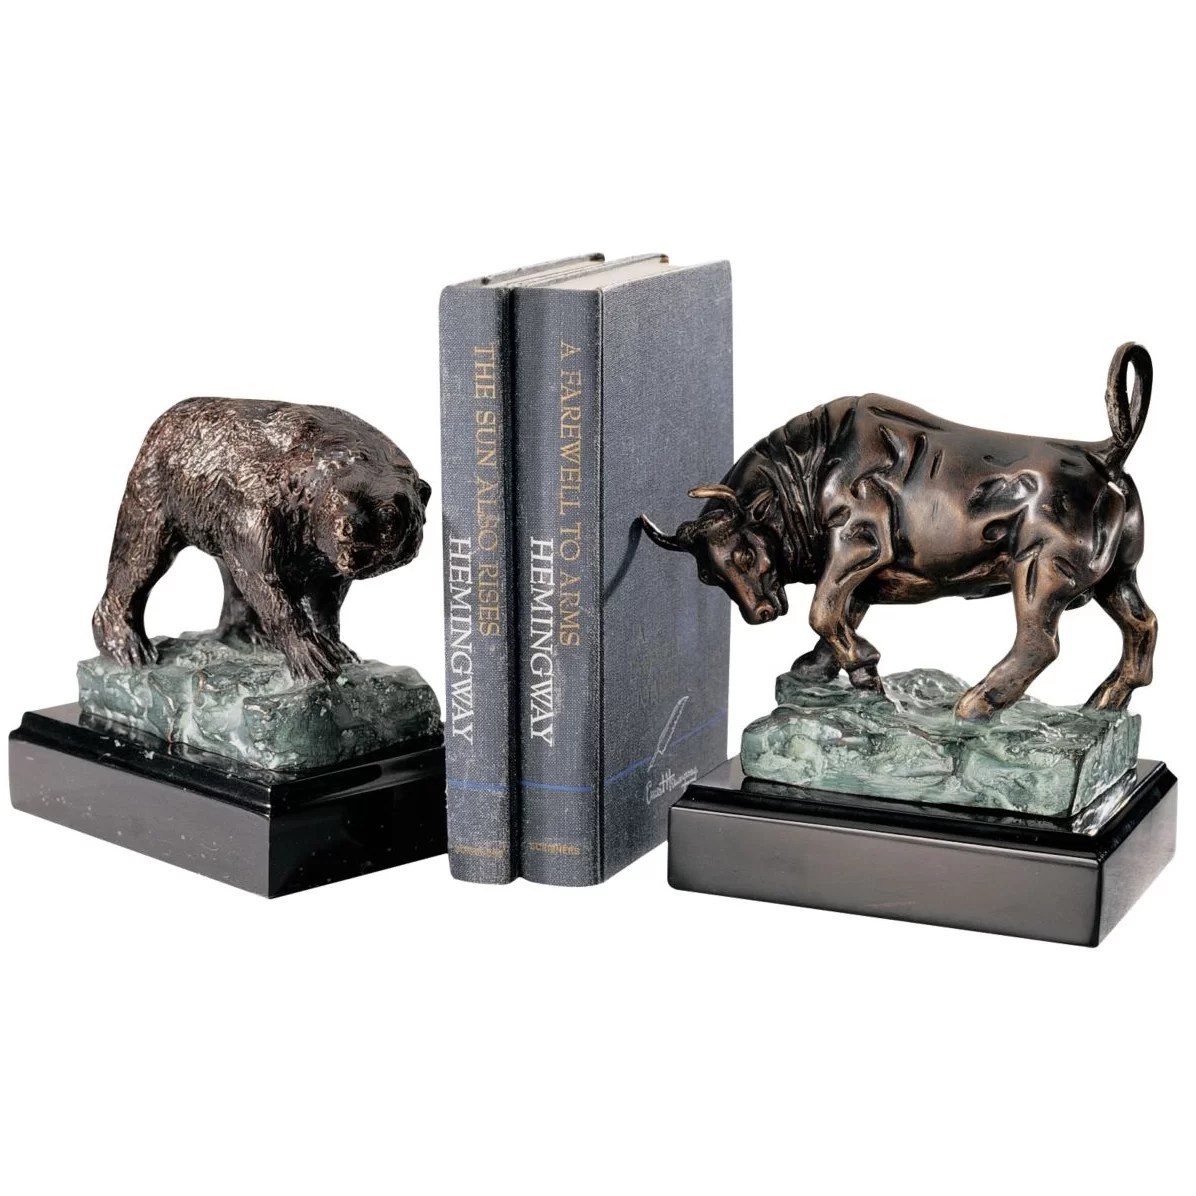 Bull And Bear Gifts Design Toscano The Bull And Bear Of Wall Street Book Ends